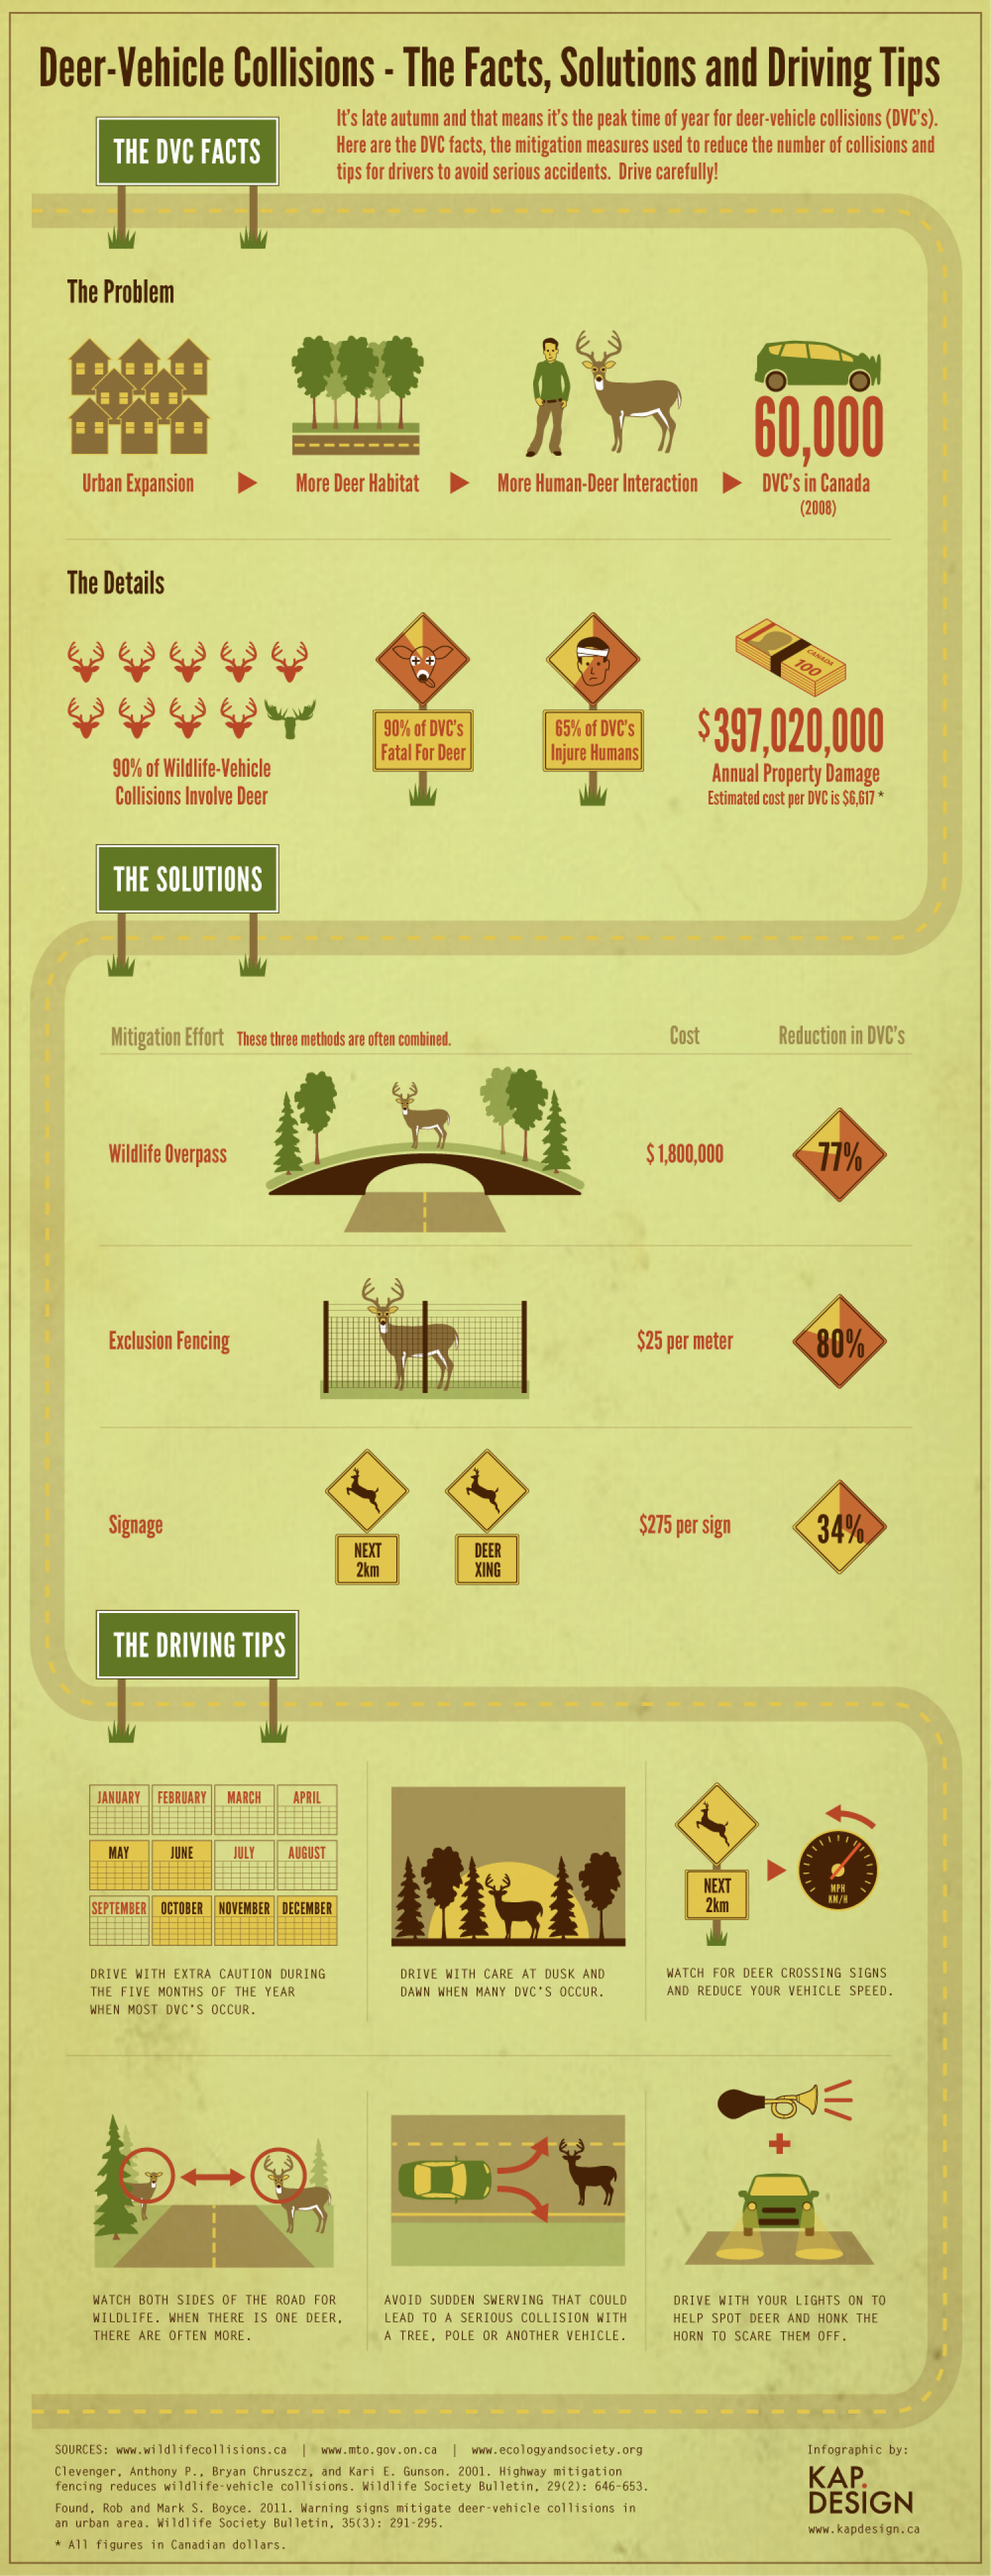 Deer-Vehicle Collisions - The Facts, Solutions and Driving Tips Infographic